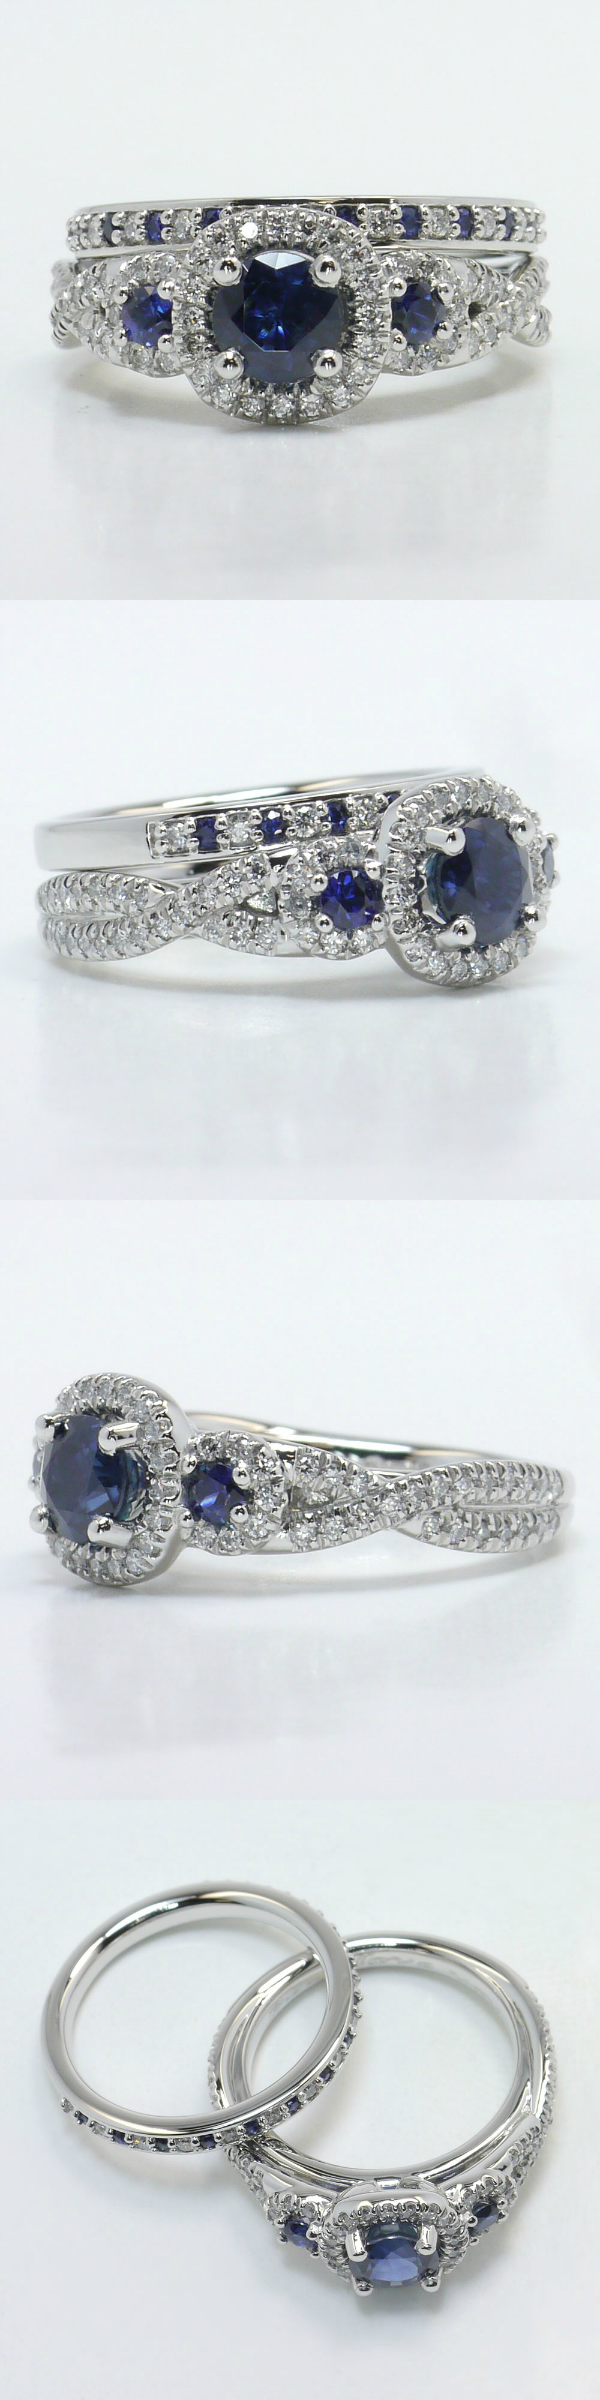 engagement pinterest ctw cost gem oval lorillhartwell side cuts on favorites sapphire images diamond best rings